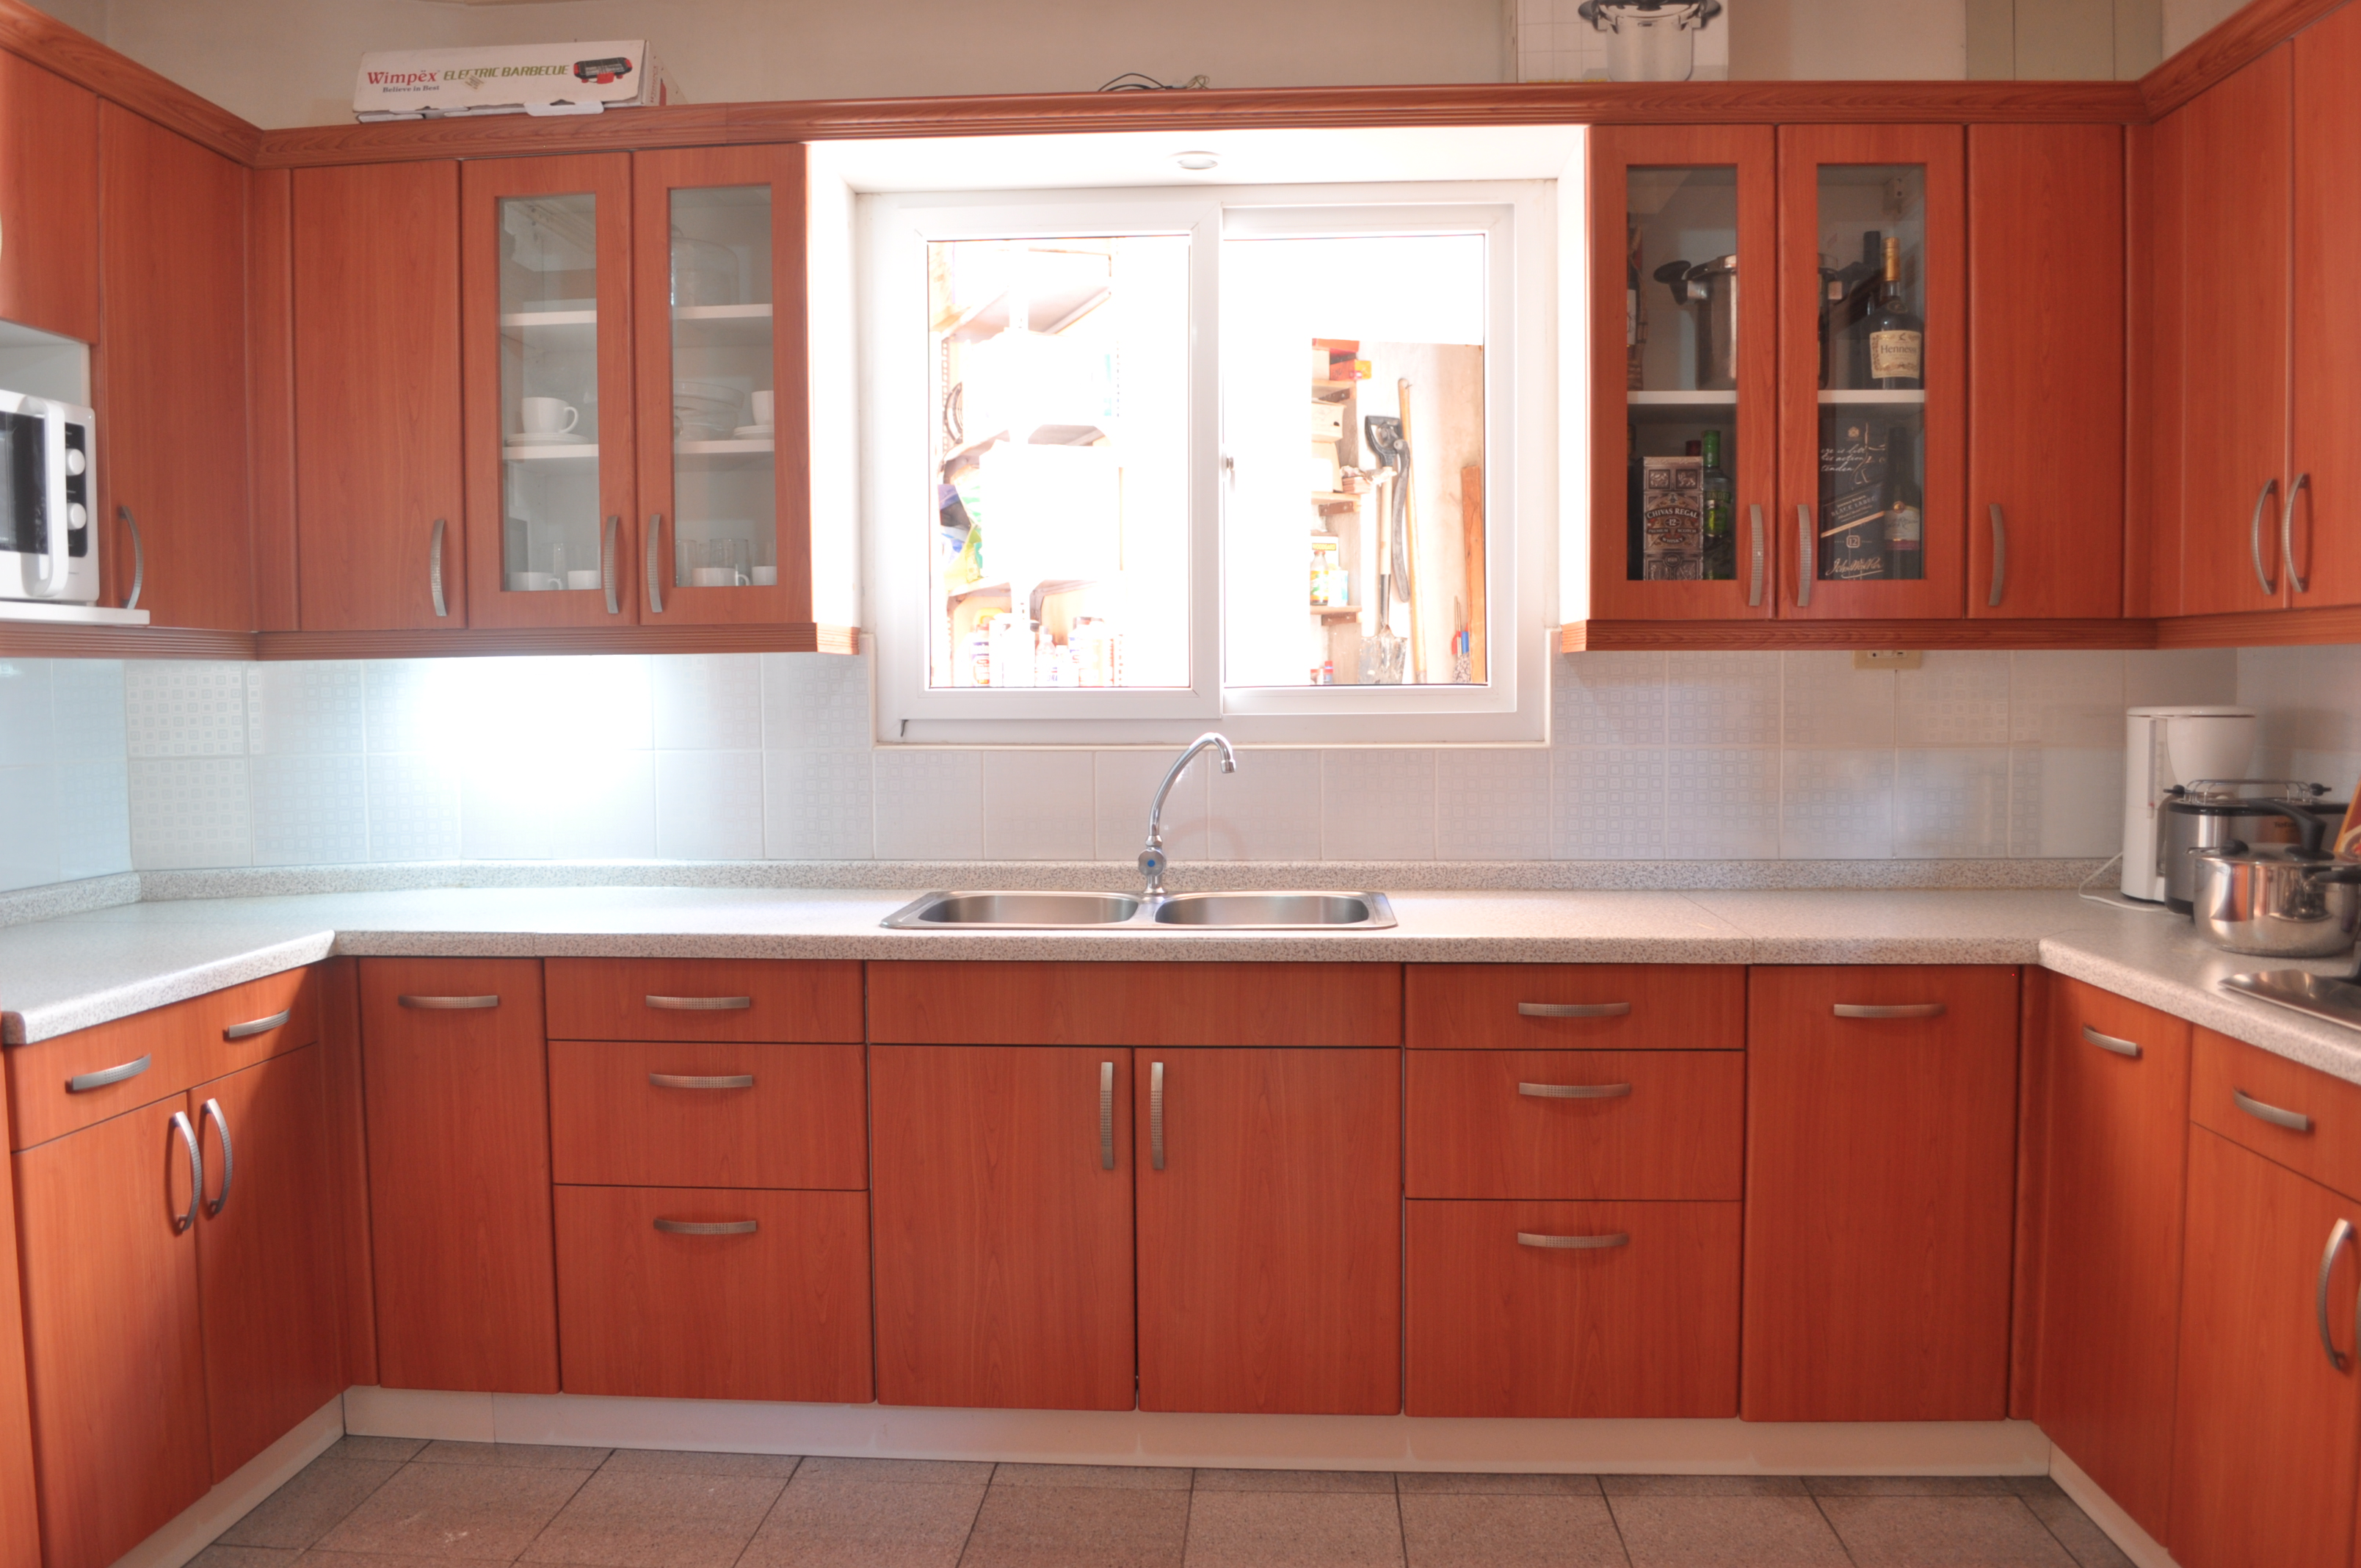 San jose kitchen cabinets photo gallery Kitchen design center san jose